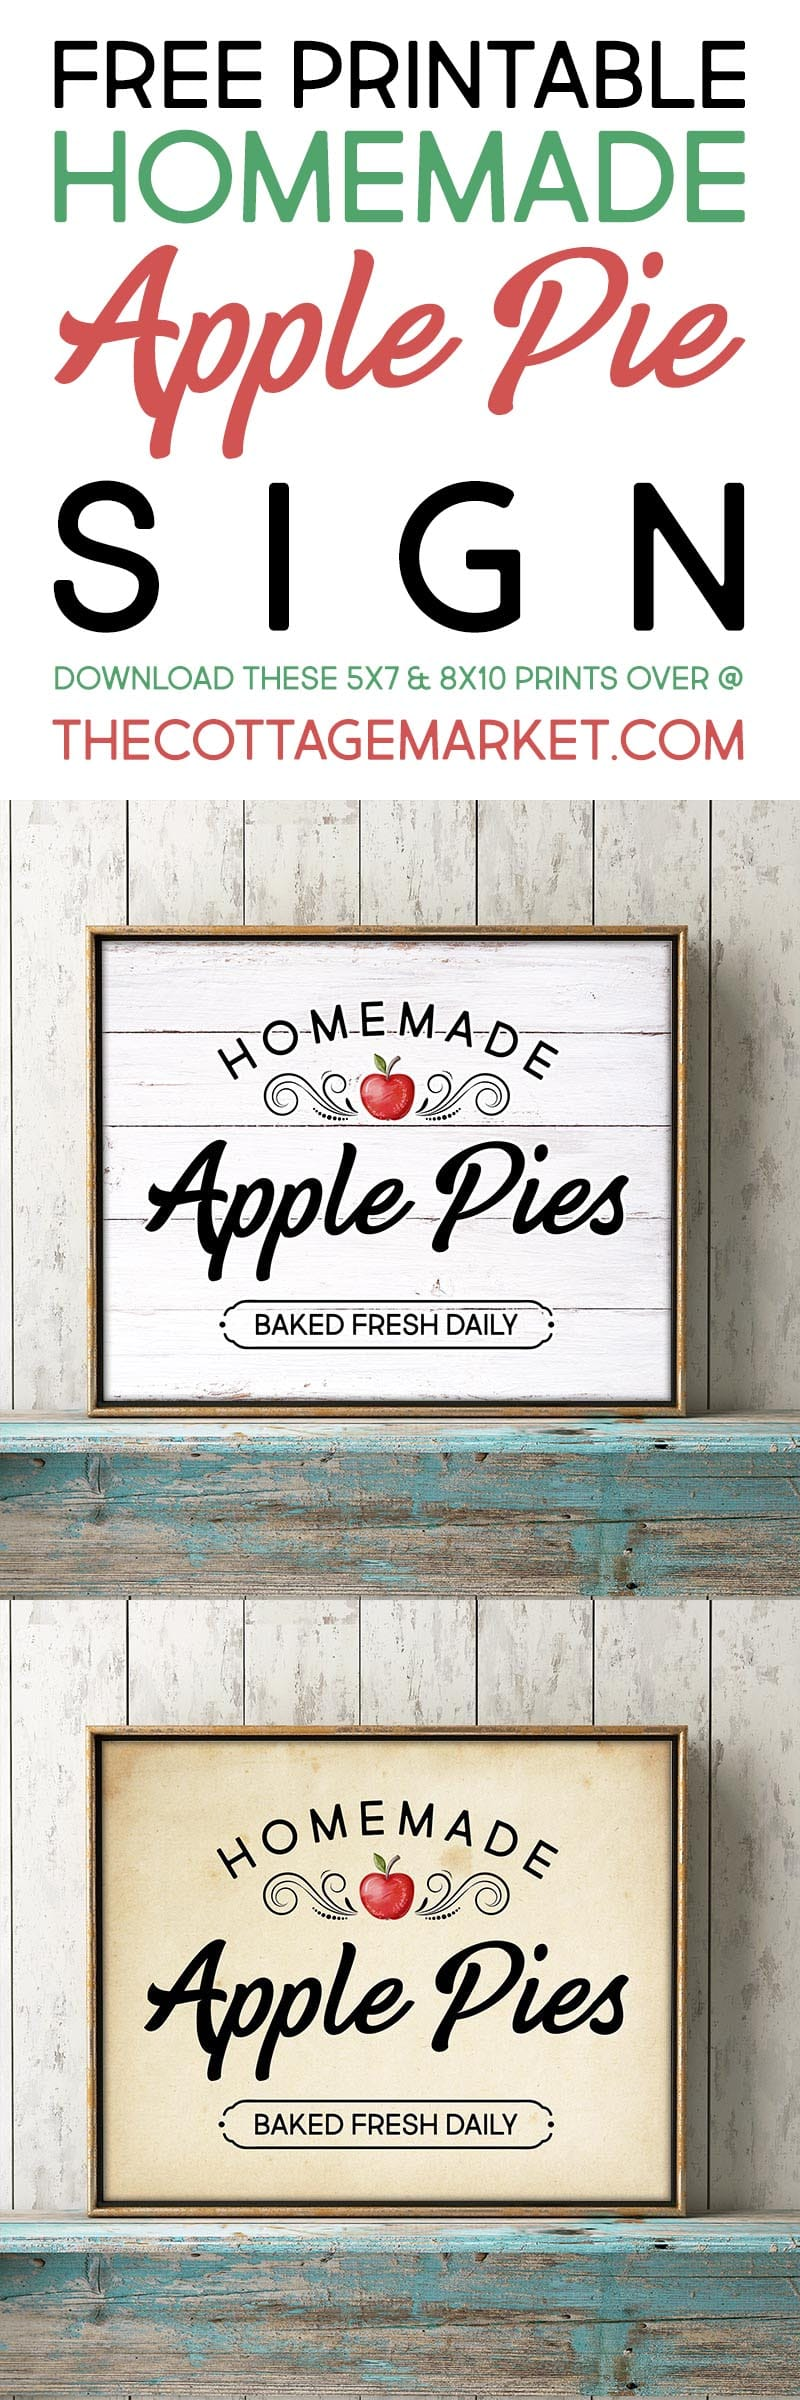 https://thecottagemarket.com/wp-content/uploads/2020/09/TCM-ApplePies-tower-1.jpg